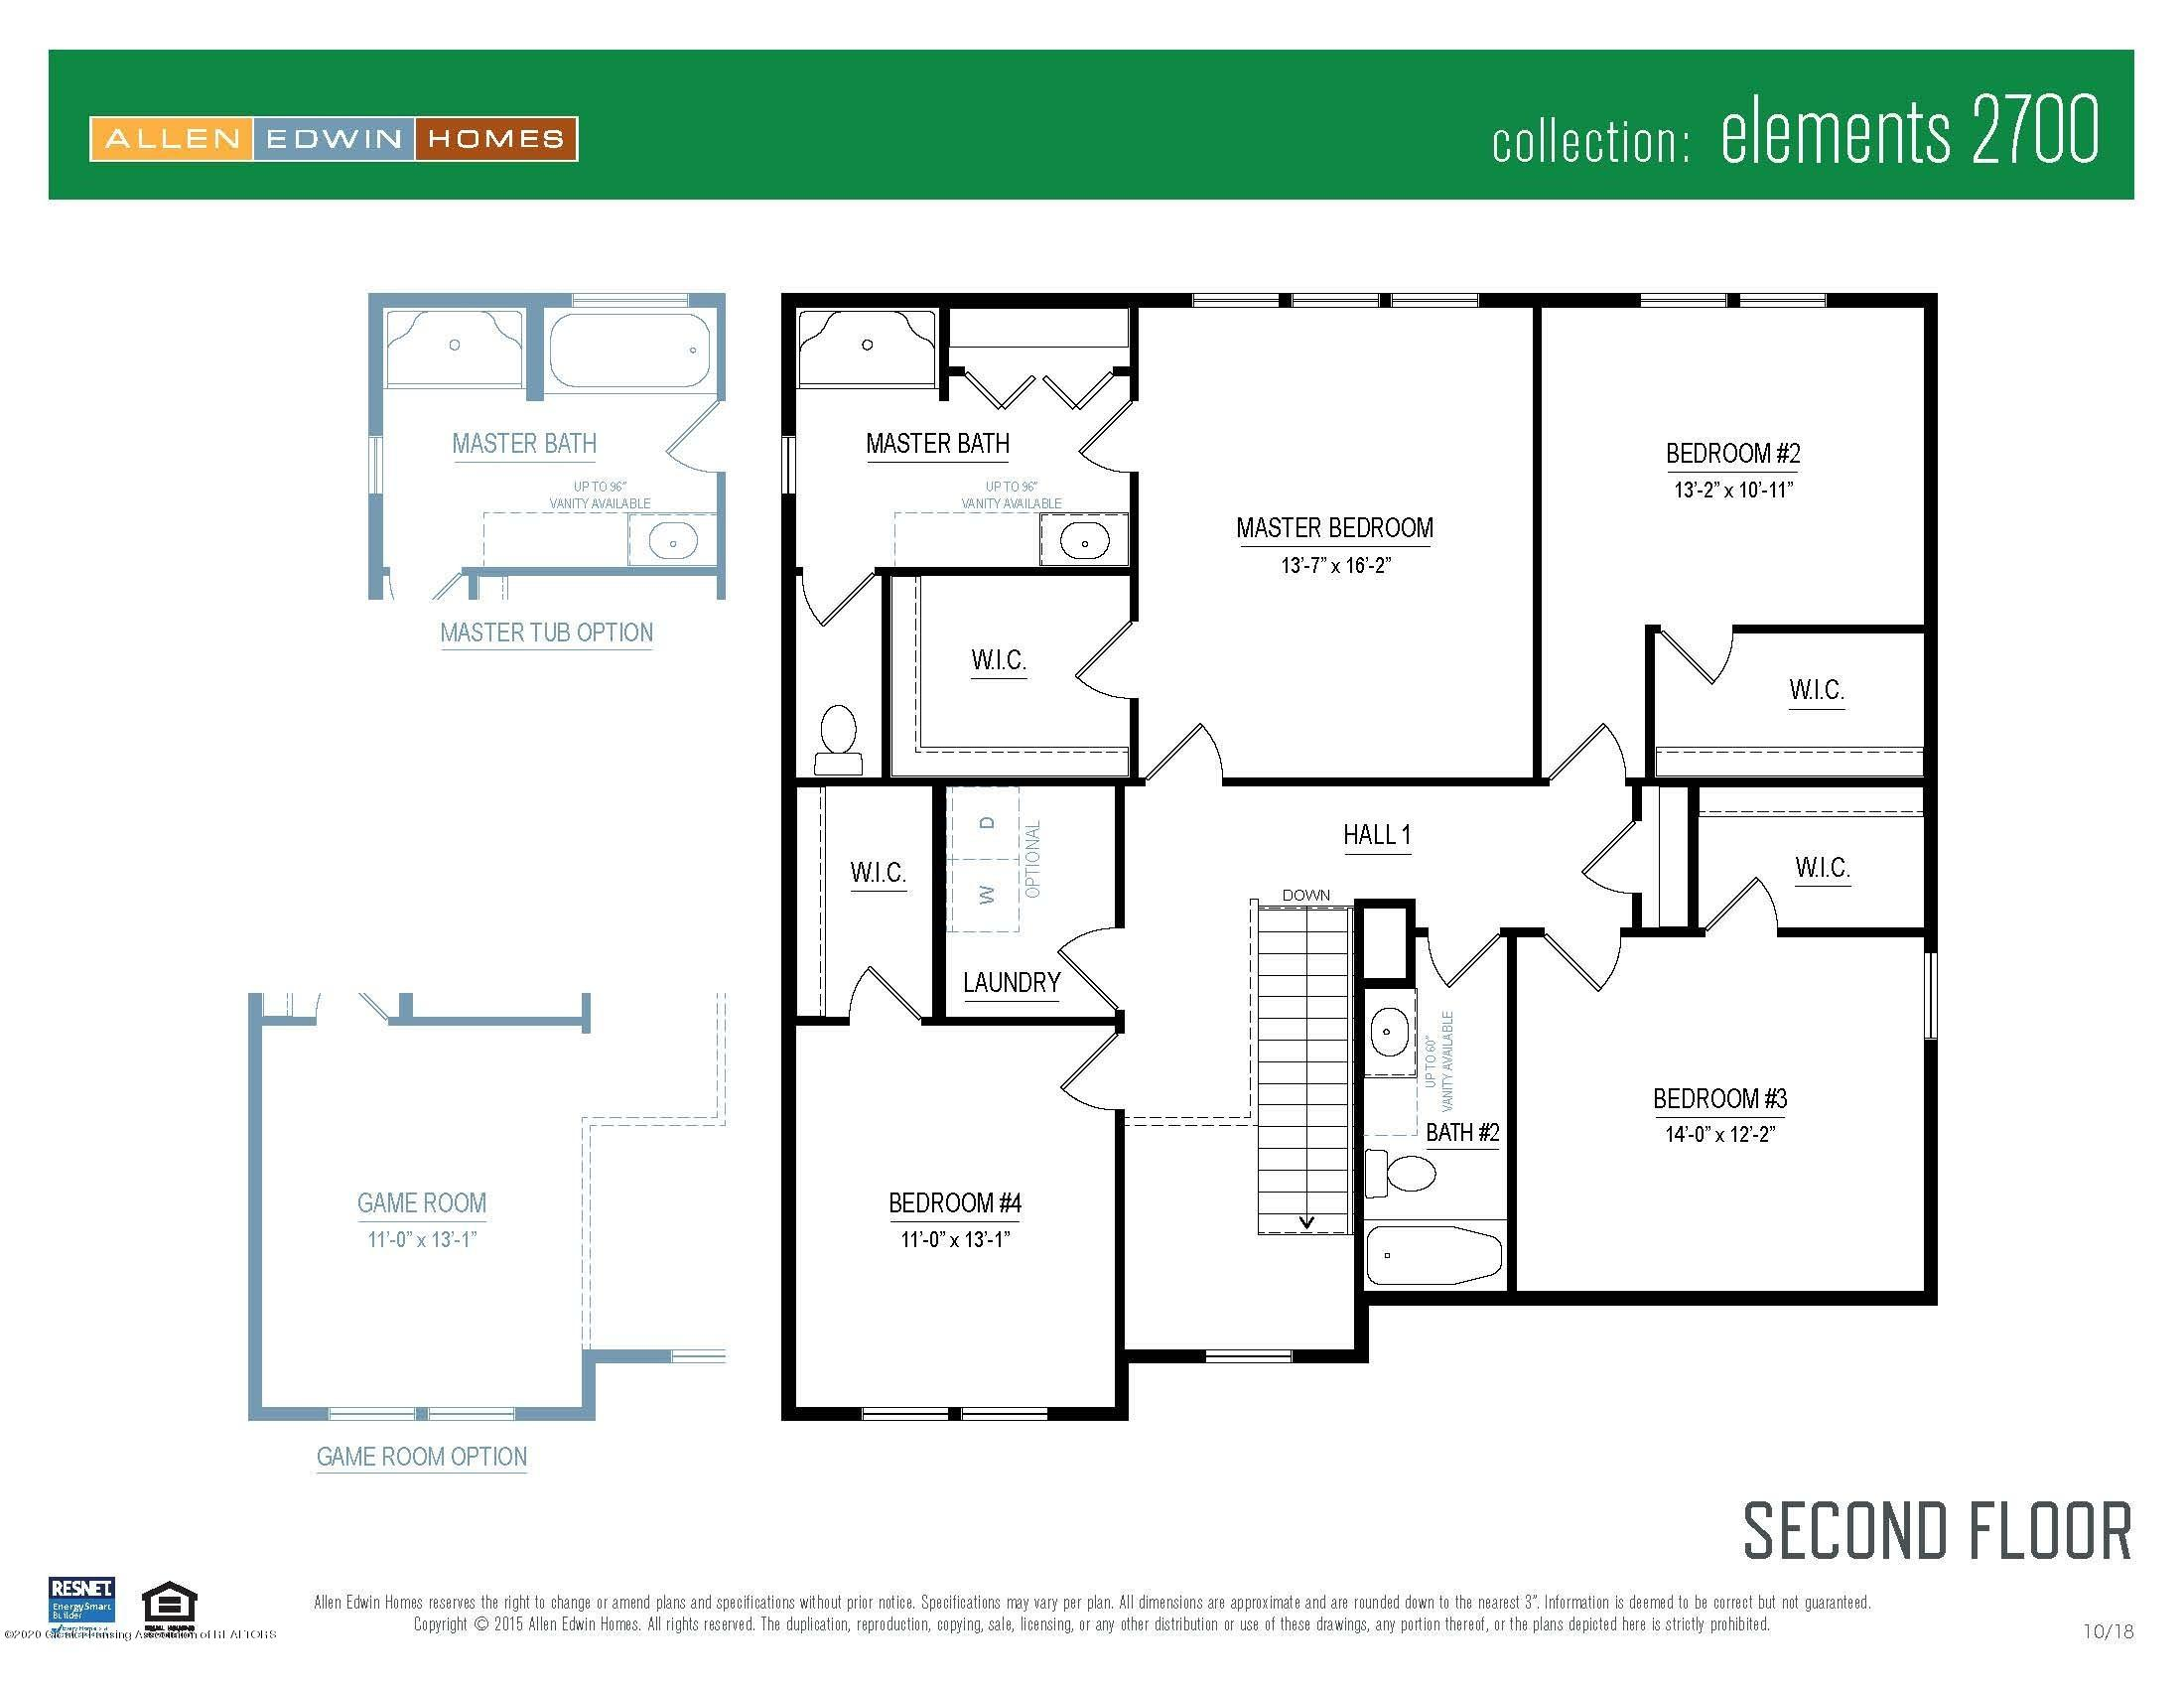 1655 Royal Crescent - Elements 2700 V8.0a Second Floor - 21